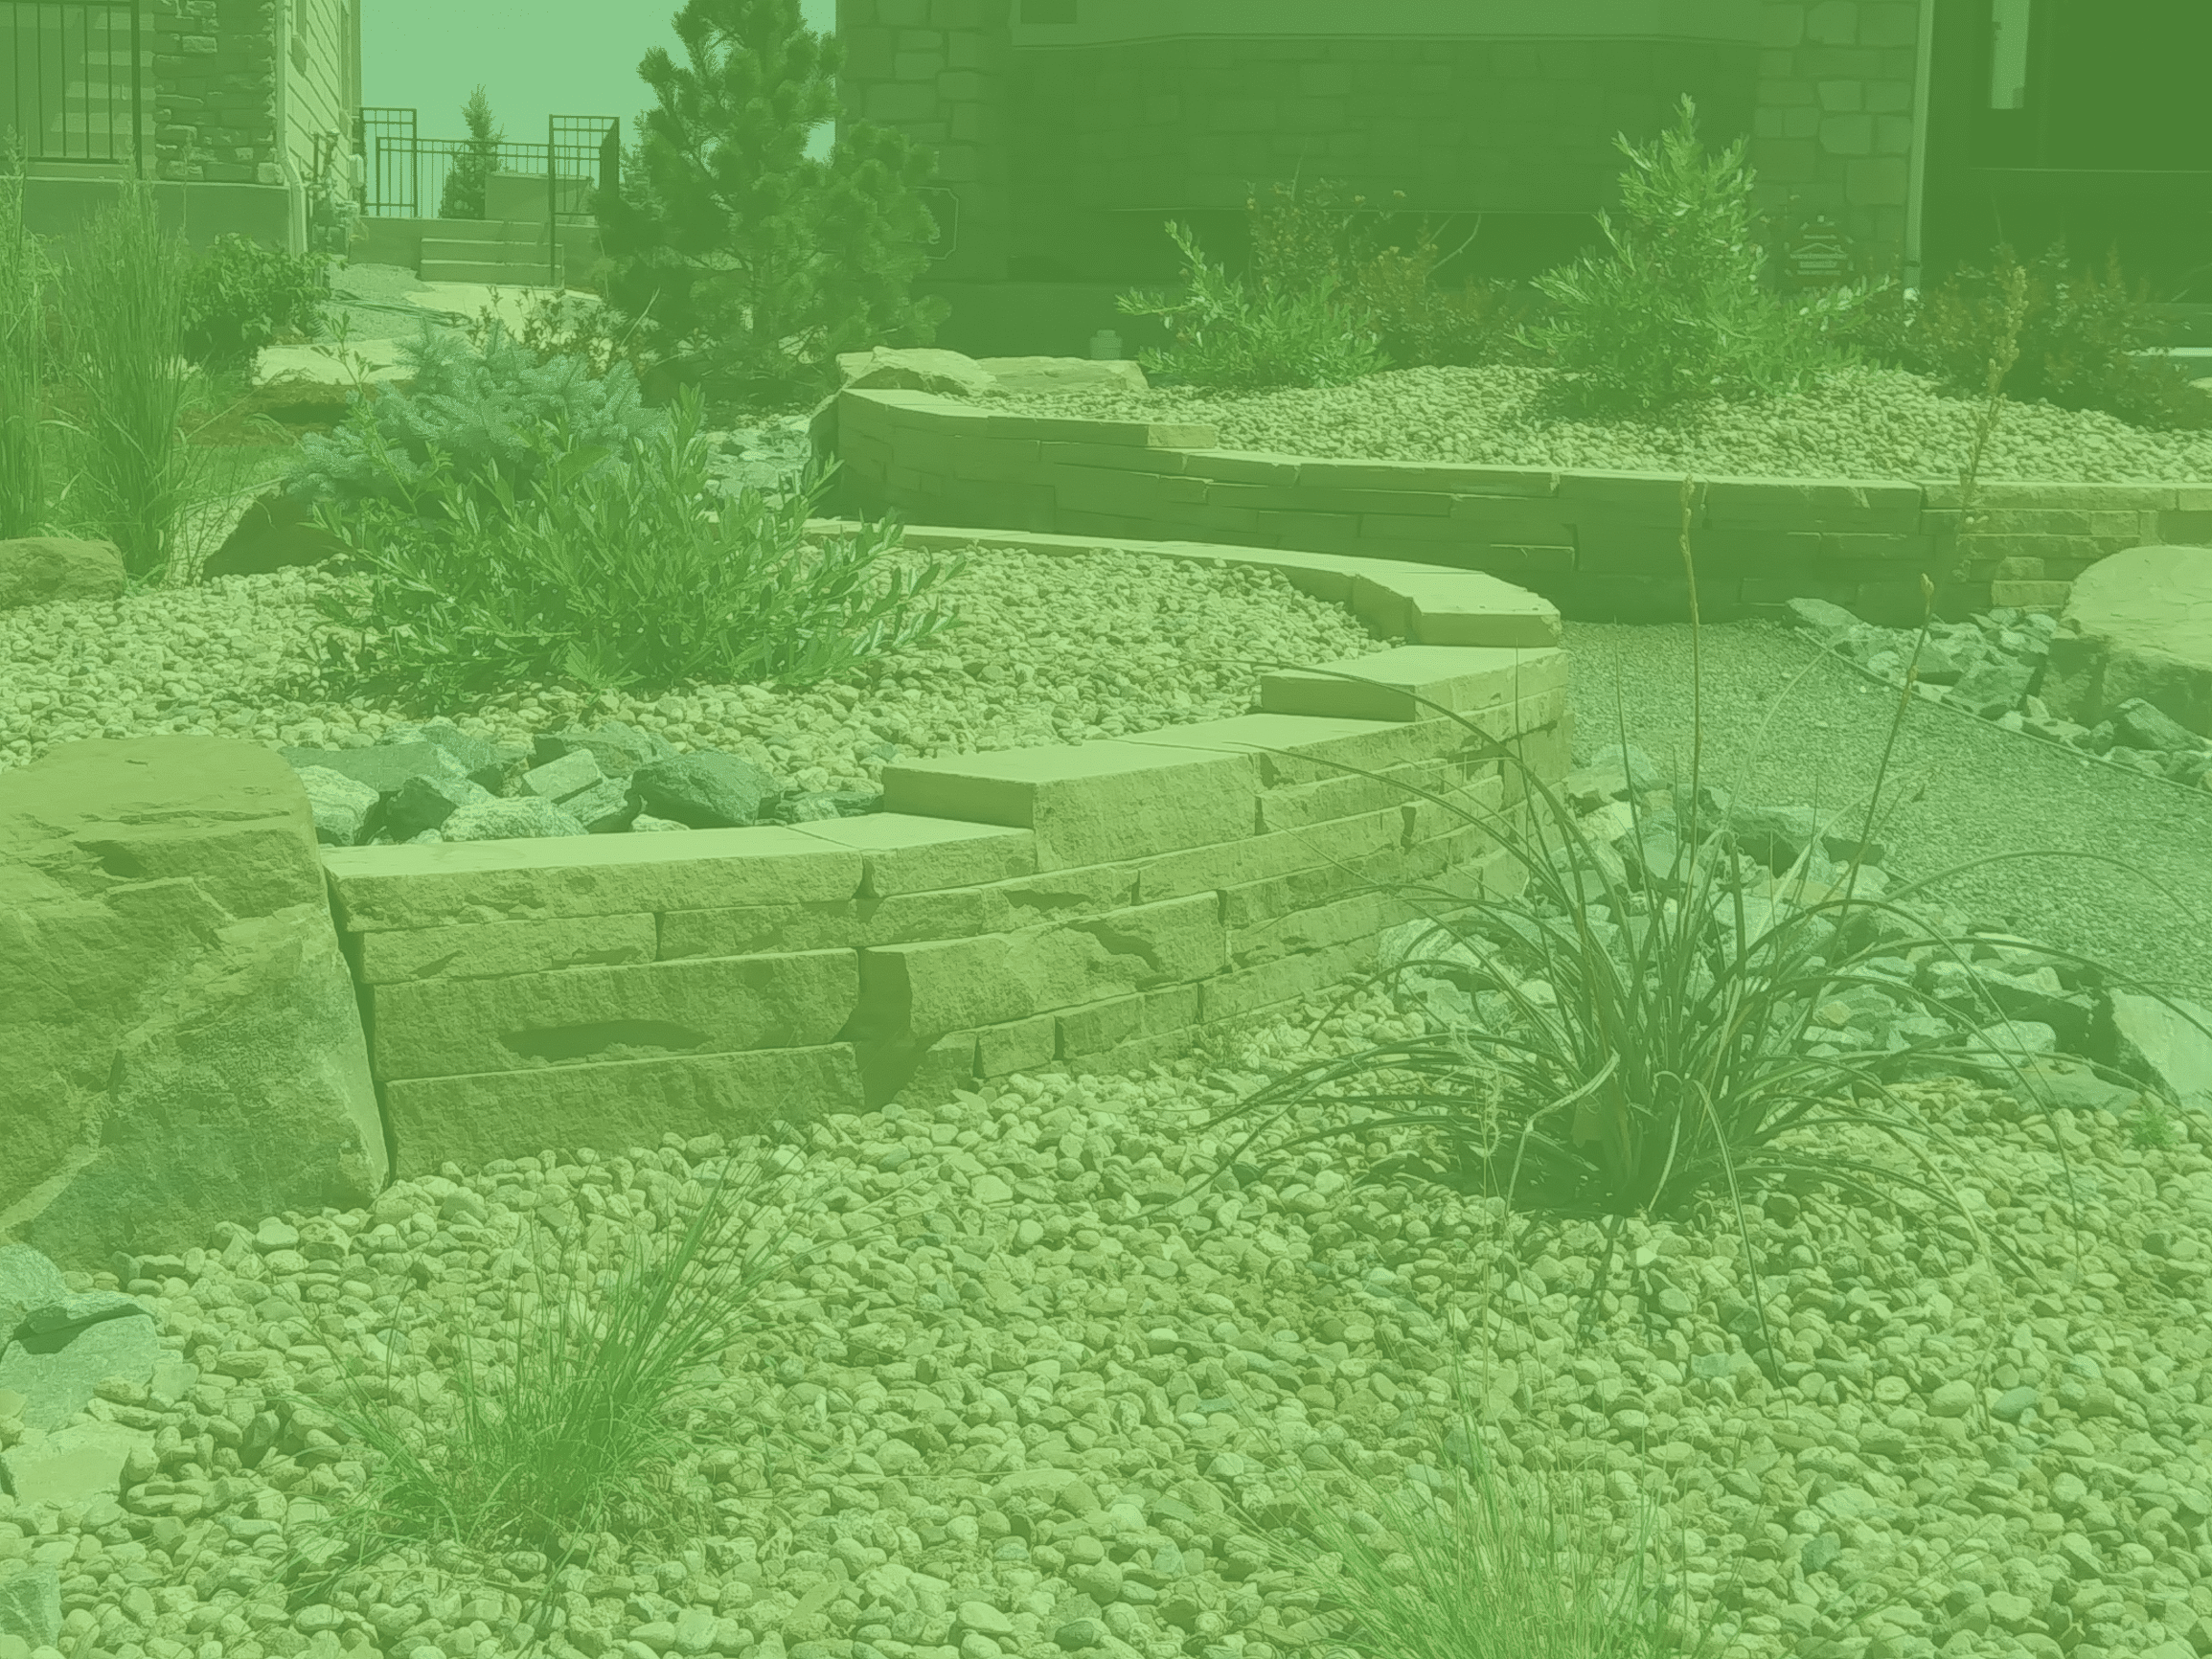 Large decorative rocks bordered with landscape rocks and low water plants and bushes.